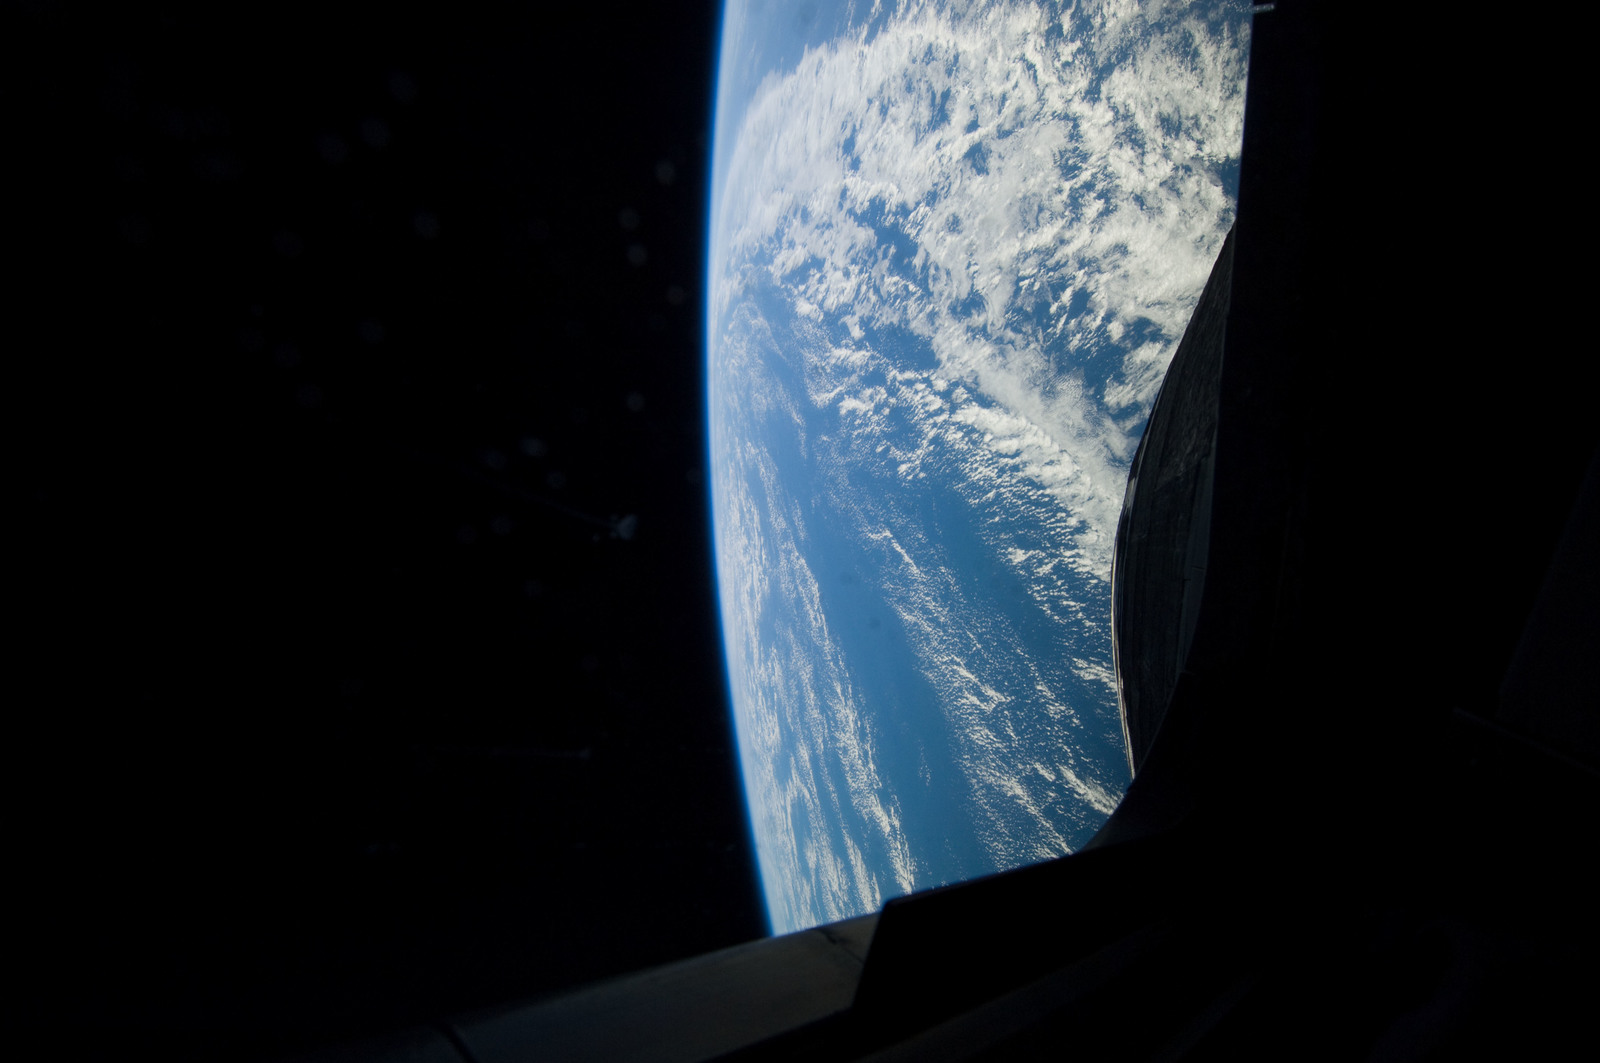 s133E006955 - STS-133 - Earth Observation taken by the STS-133 crew